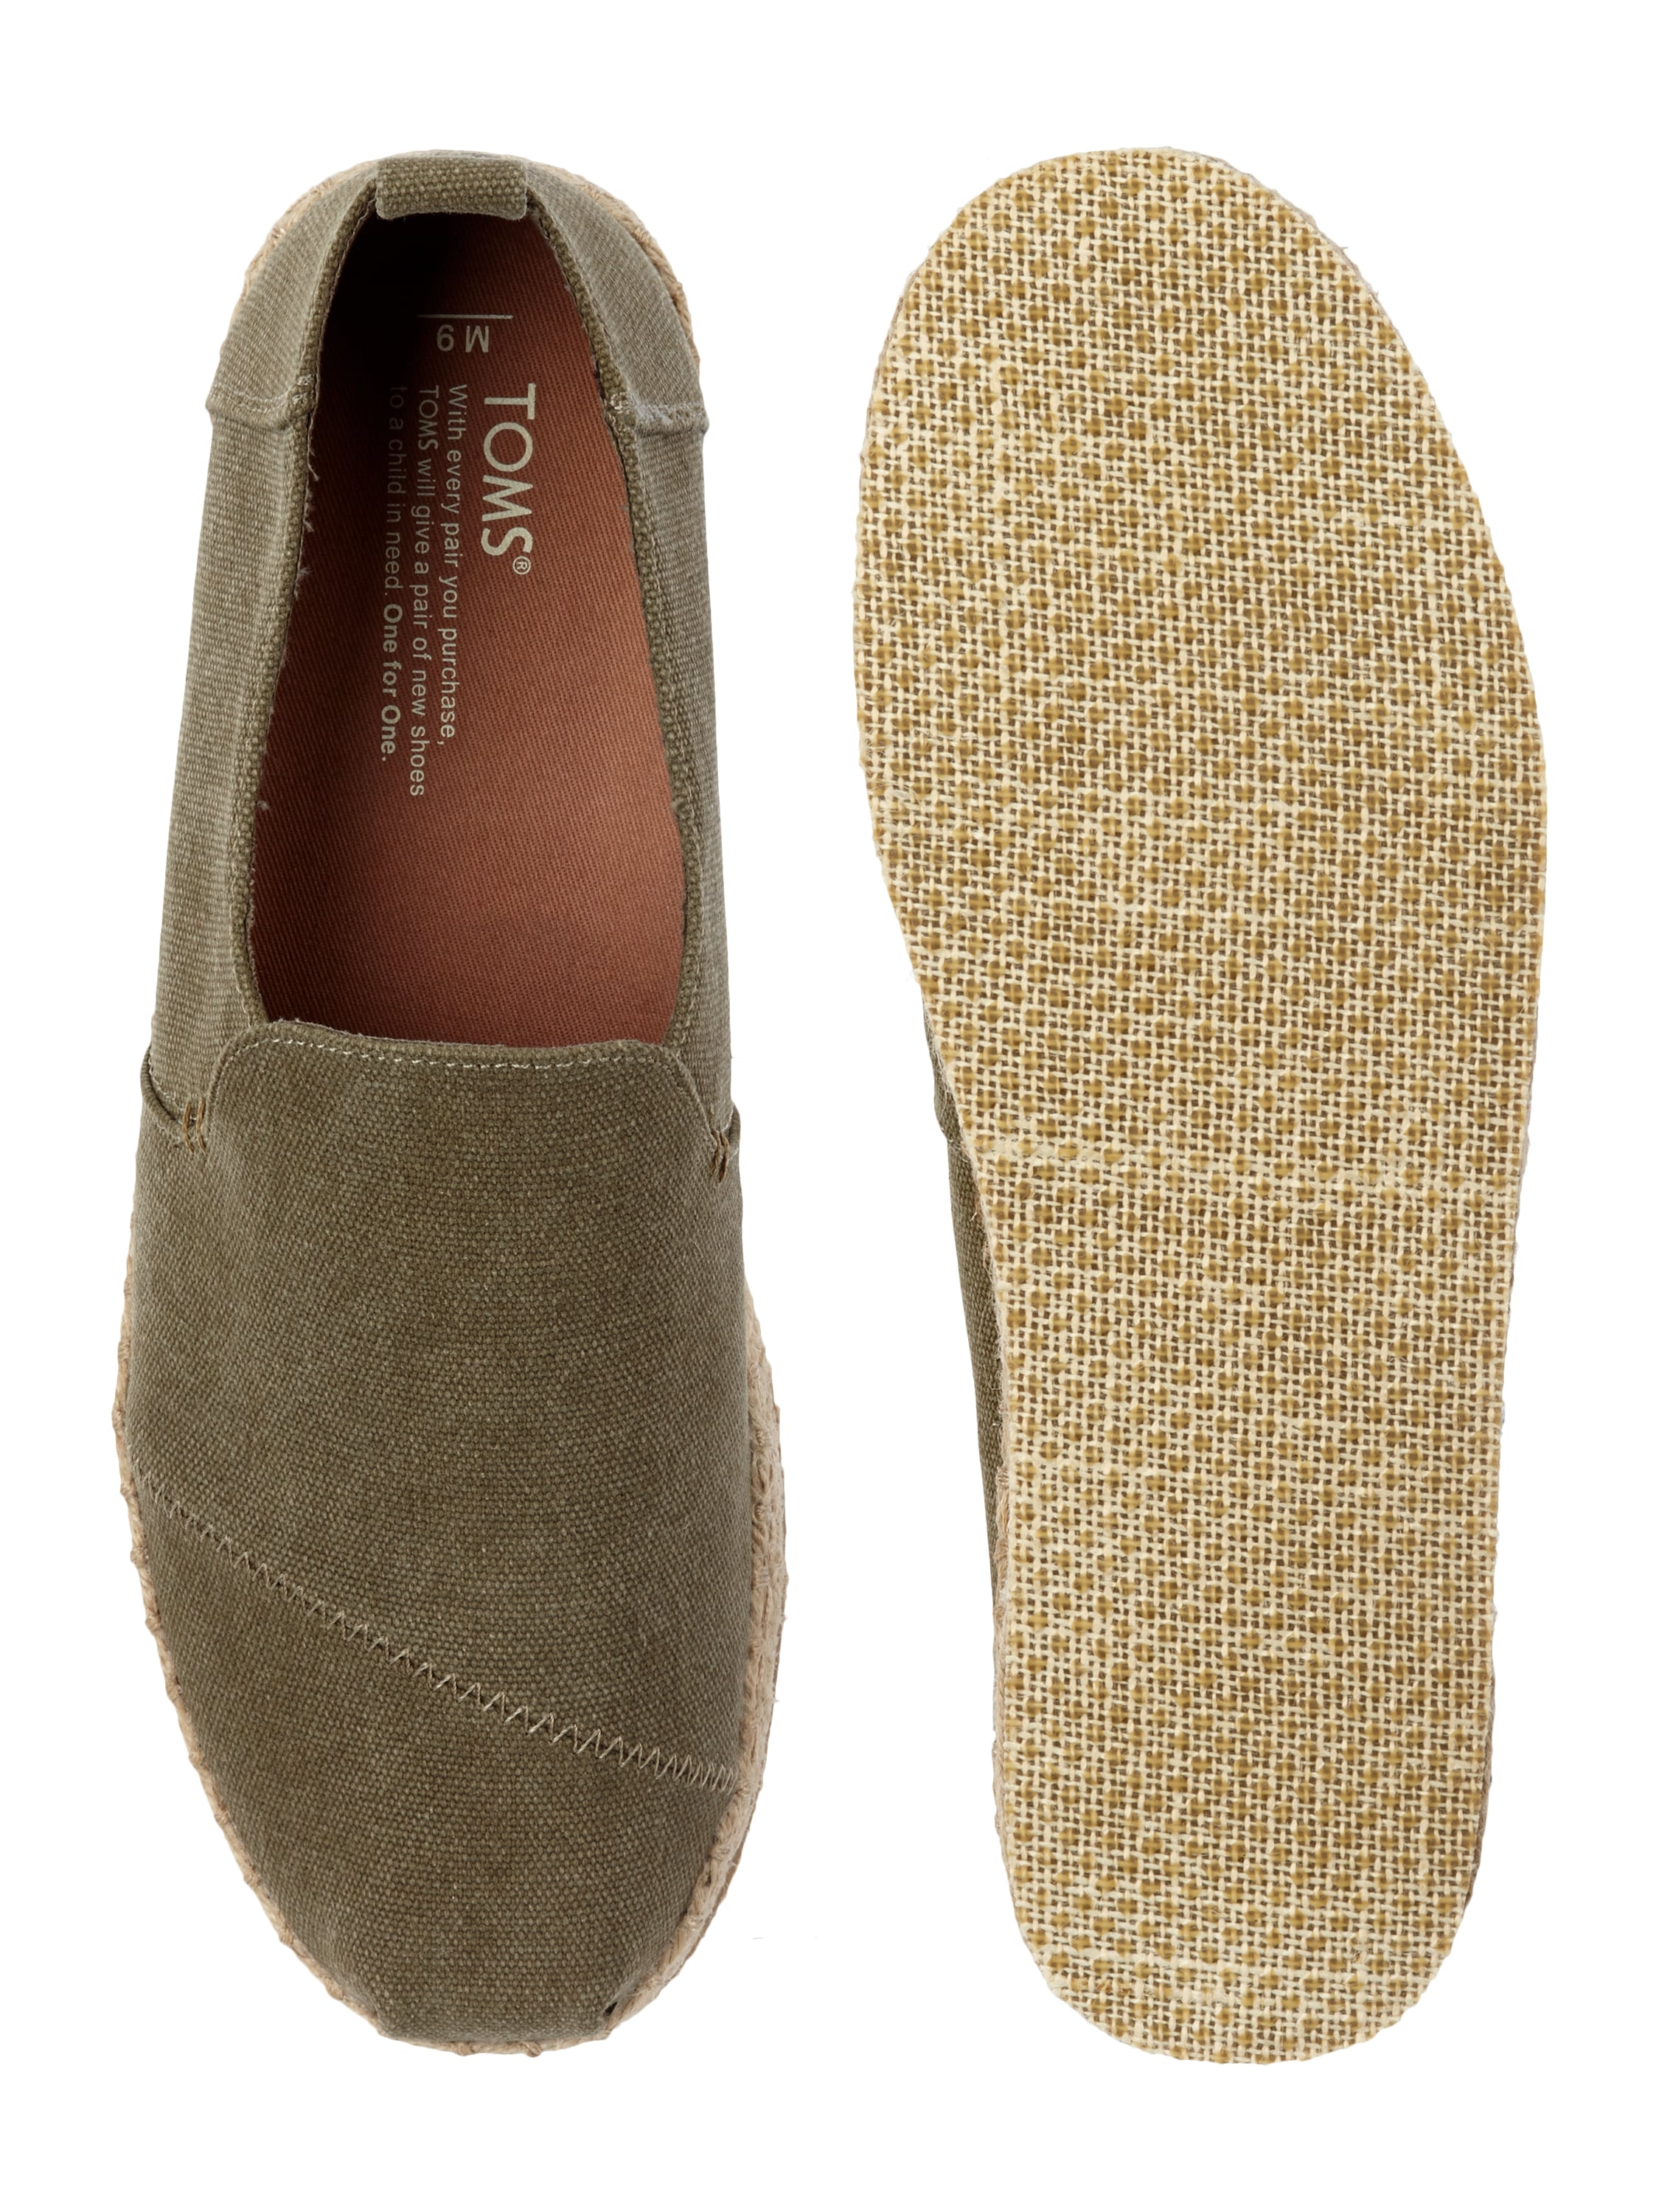 toms espadrilles mit besatz in flechtoptik in gr n online kaufen 9595523 p c online shop. Black Bedroom Furniture Sets. Home Design Ideas